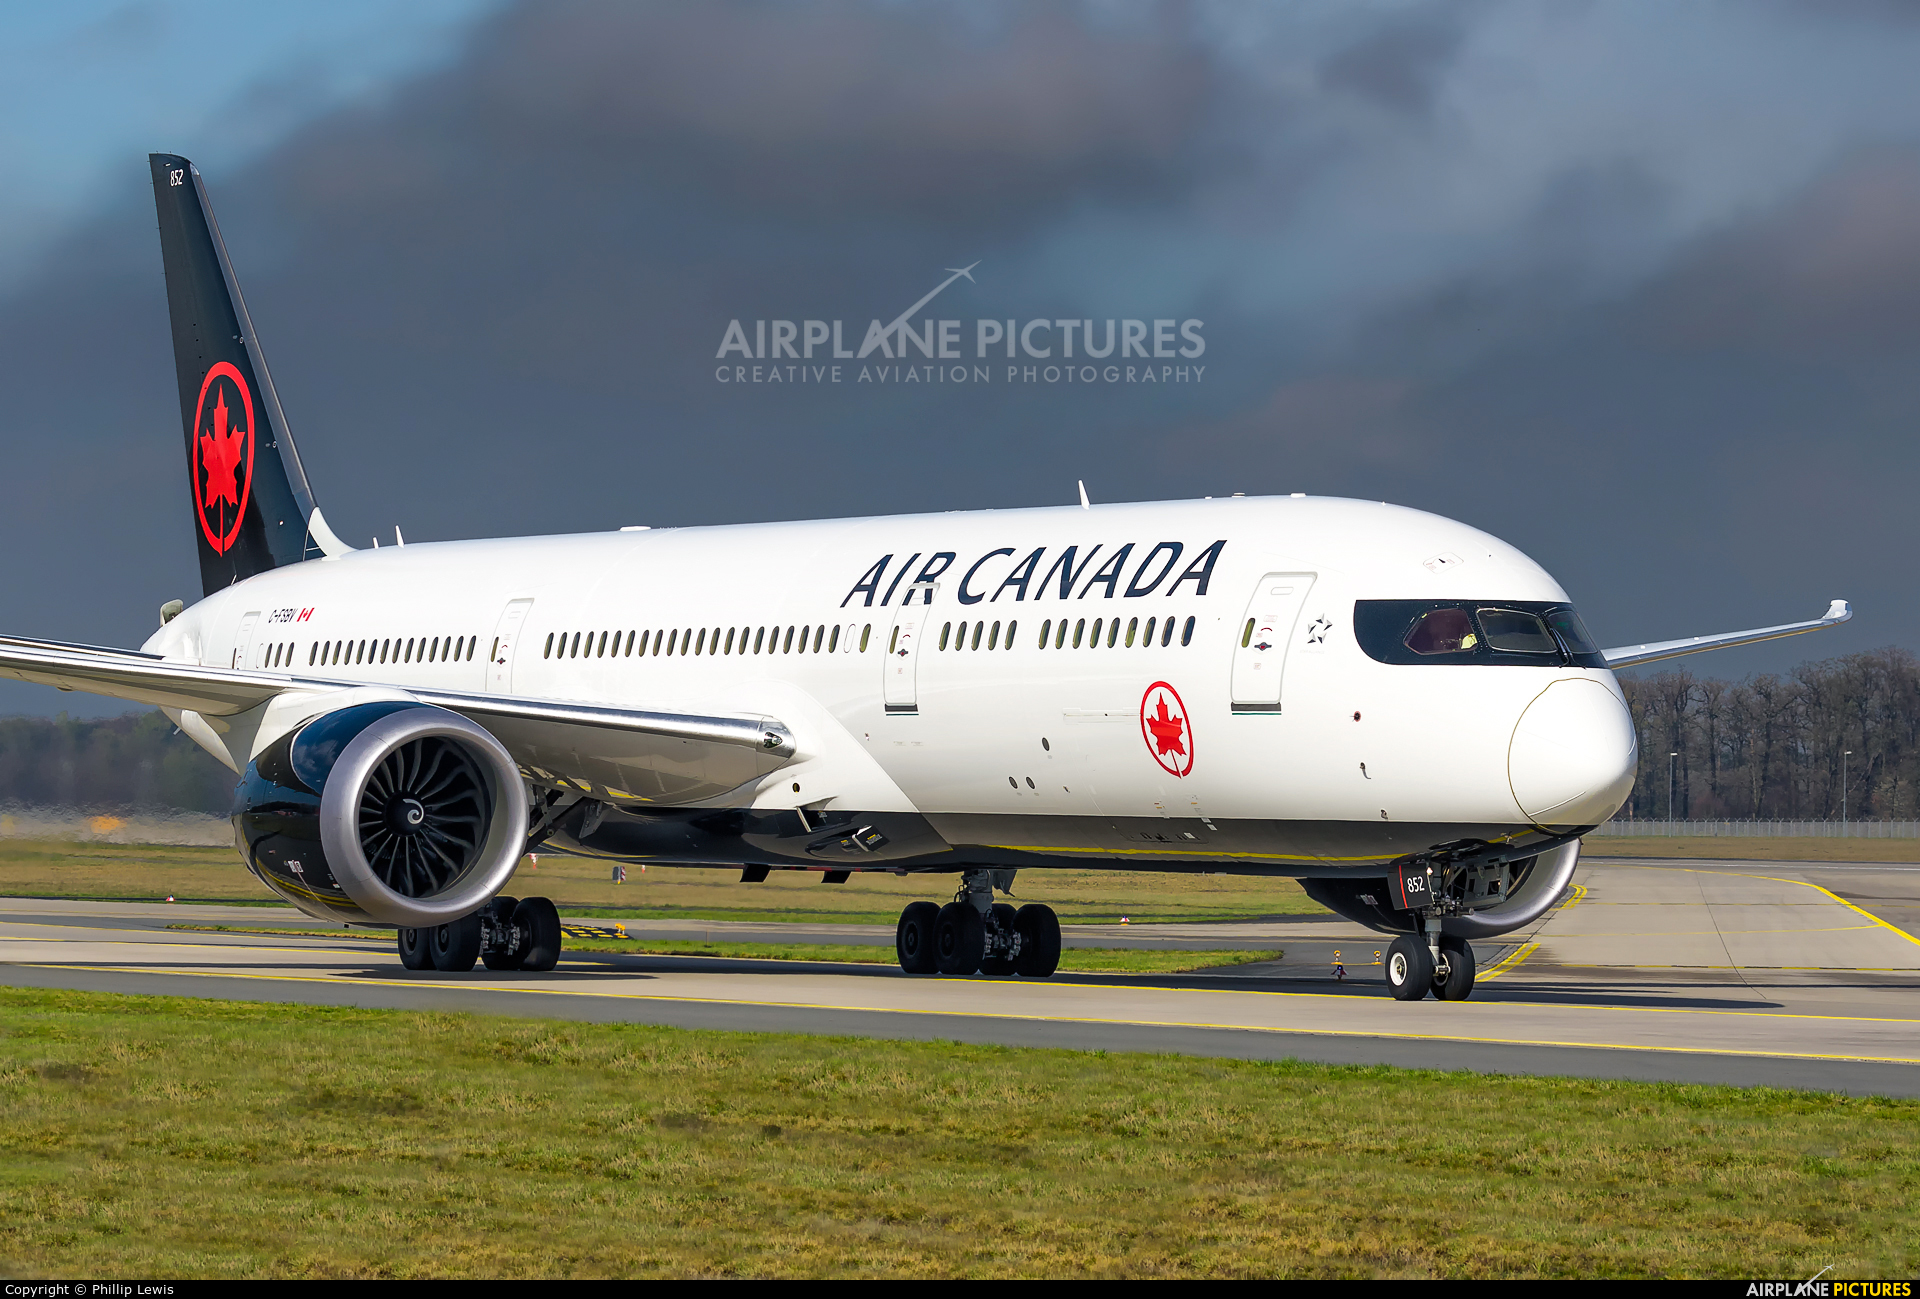 Air Canada C-FSBV aircraft at Frankfurt